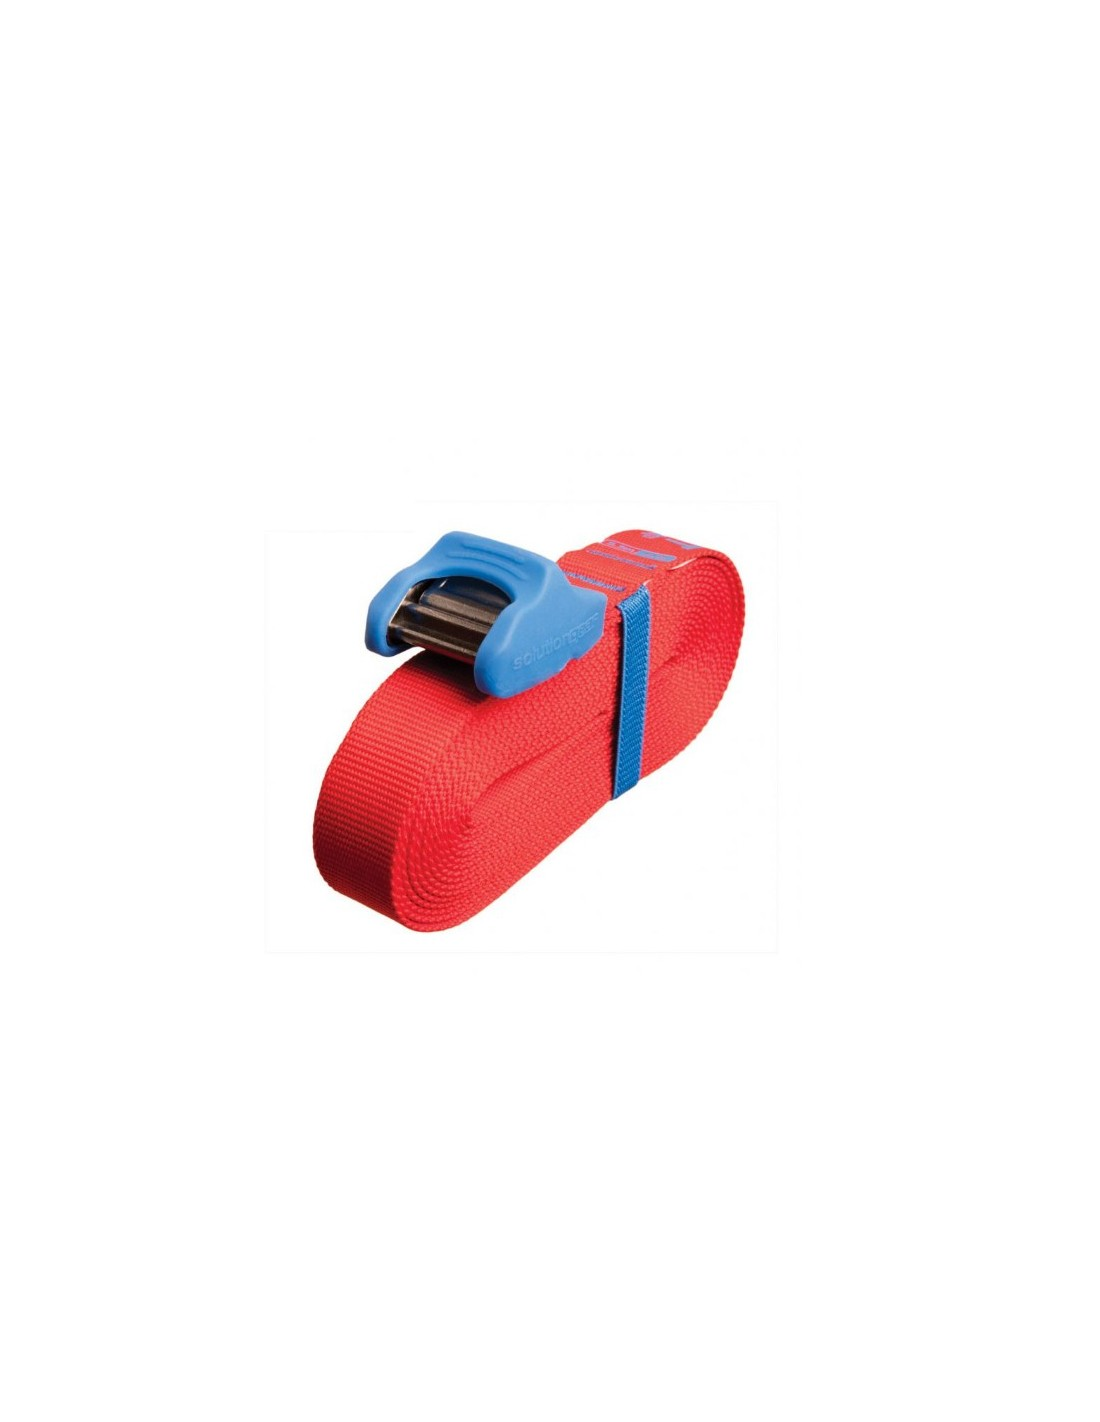 Sea To Summit Tie Down Strap with Silicone Cam Cover 5,5m (Pair) Red/Blue